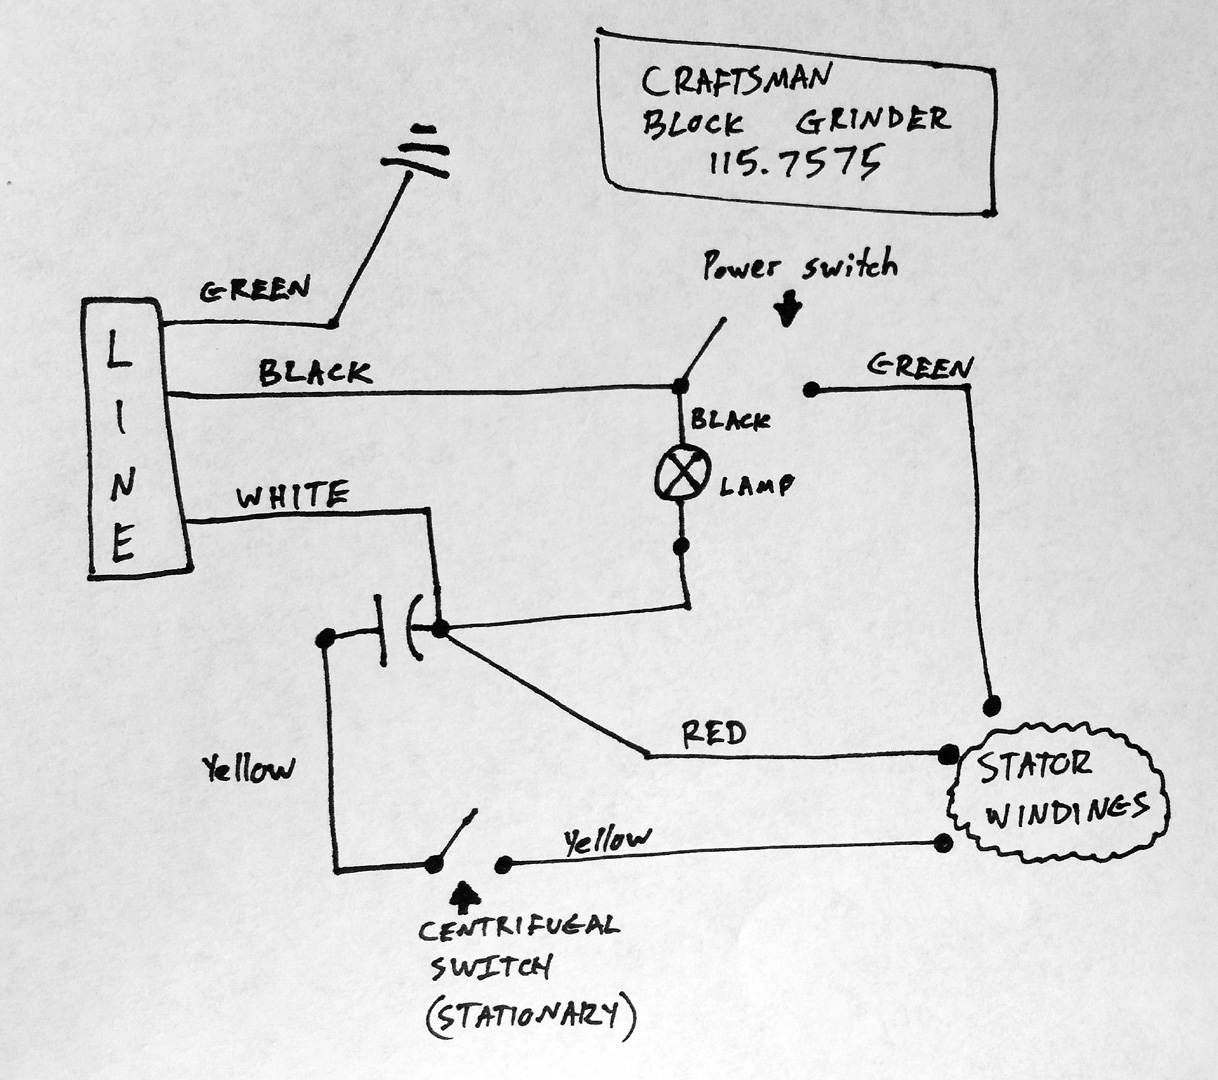 grinder_cm_1157575_01_elec2 craftsman 115 7575 pre block grinder restoration [part 4 grinder pump wiring diagram at honlapkeszites.co